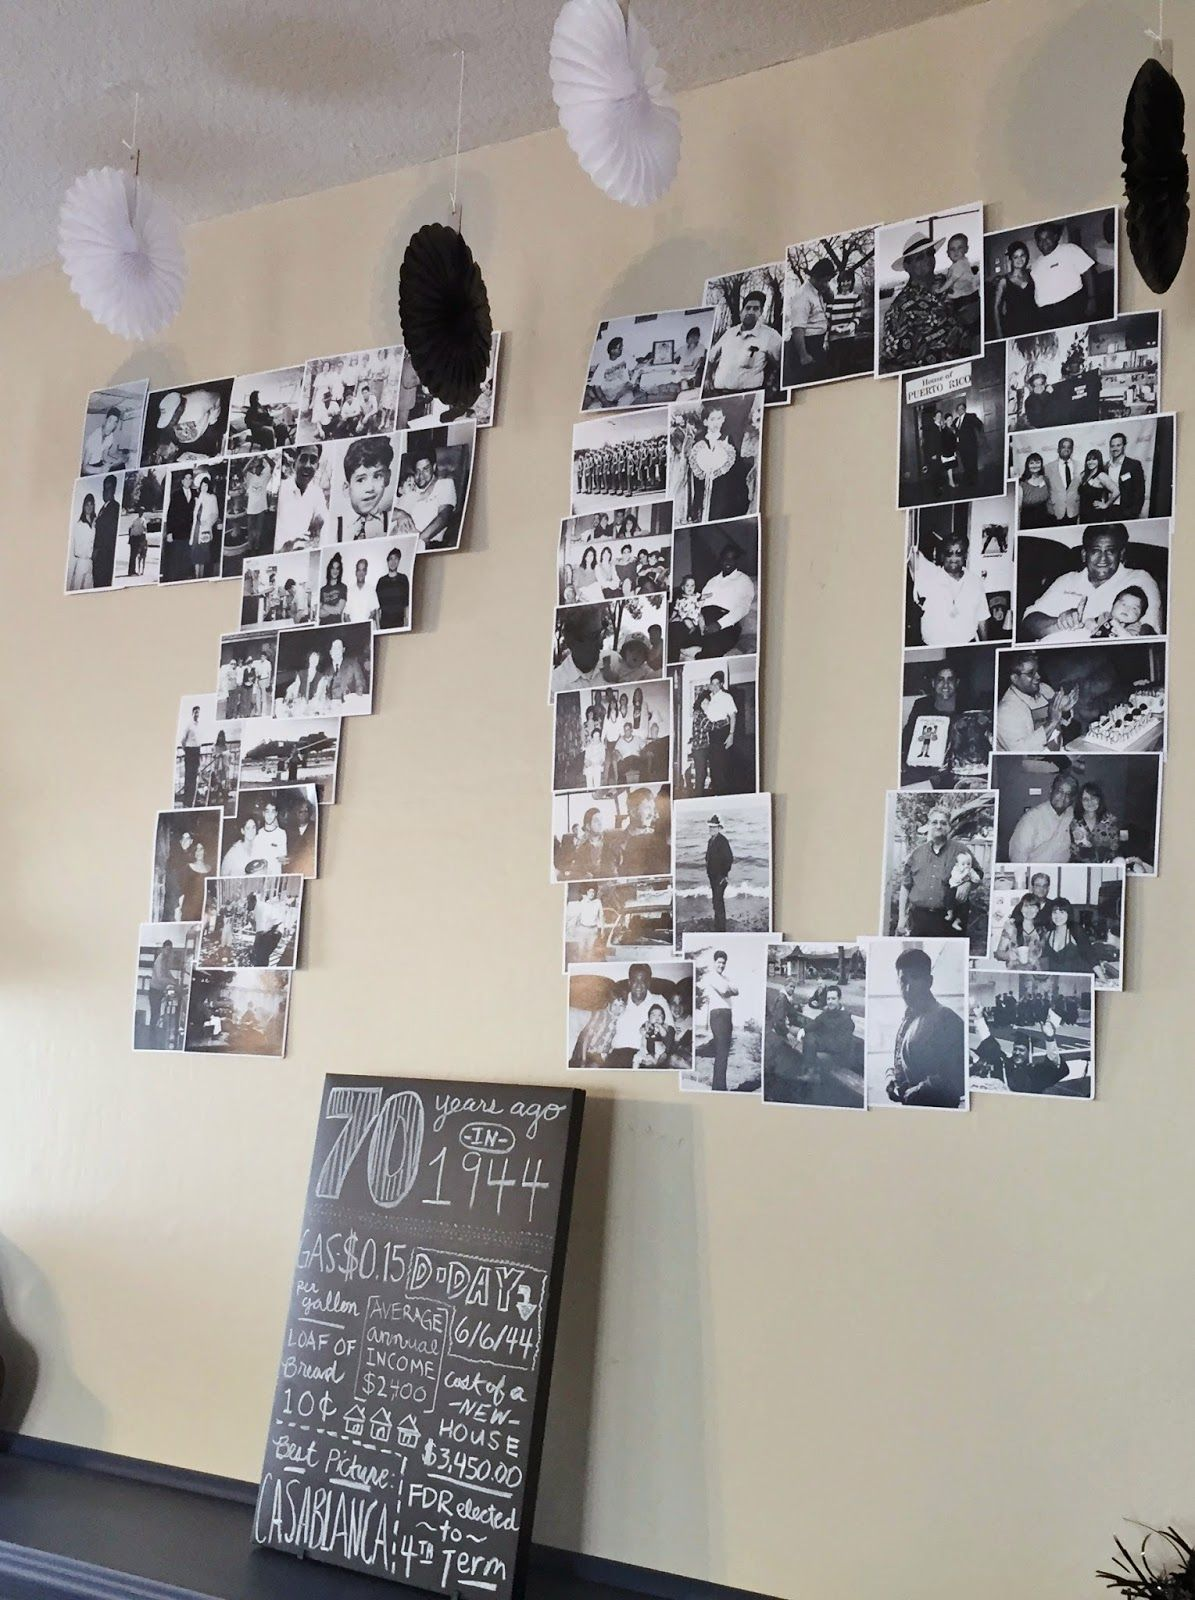 70 Photo Collage From Dads Milestone 70th Birthday Party Decor Black White And Gray Chevron Color Scheme Click Or Visit Fabeveryday For More